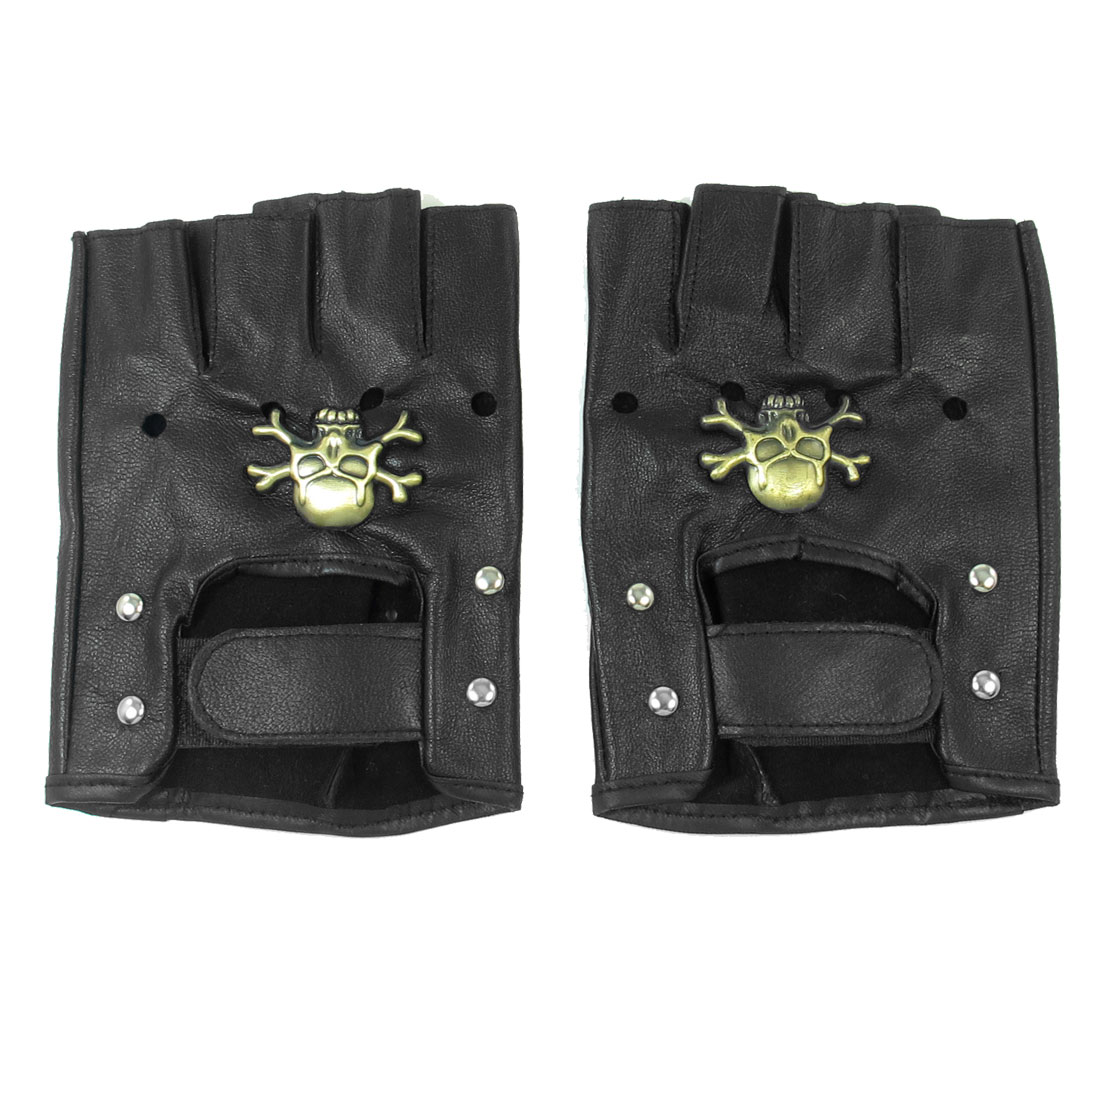 Skull Decor Cycling Nonslip Neoprene Fingerless Gloves Black for Ladies Men